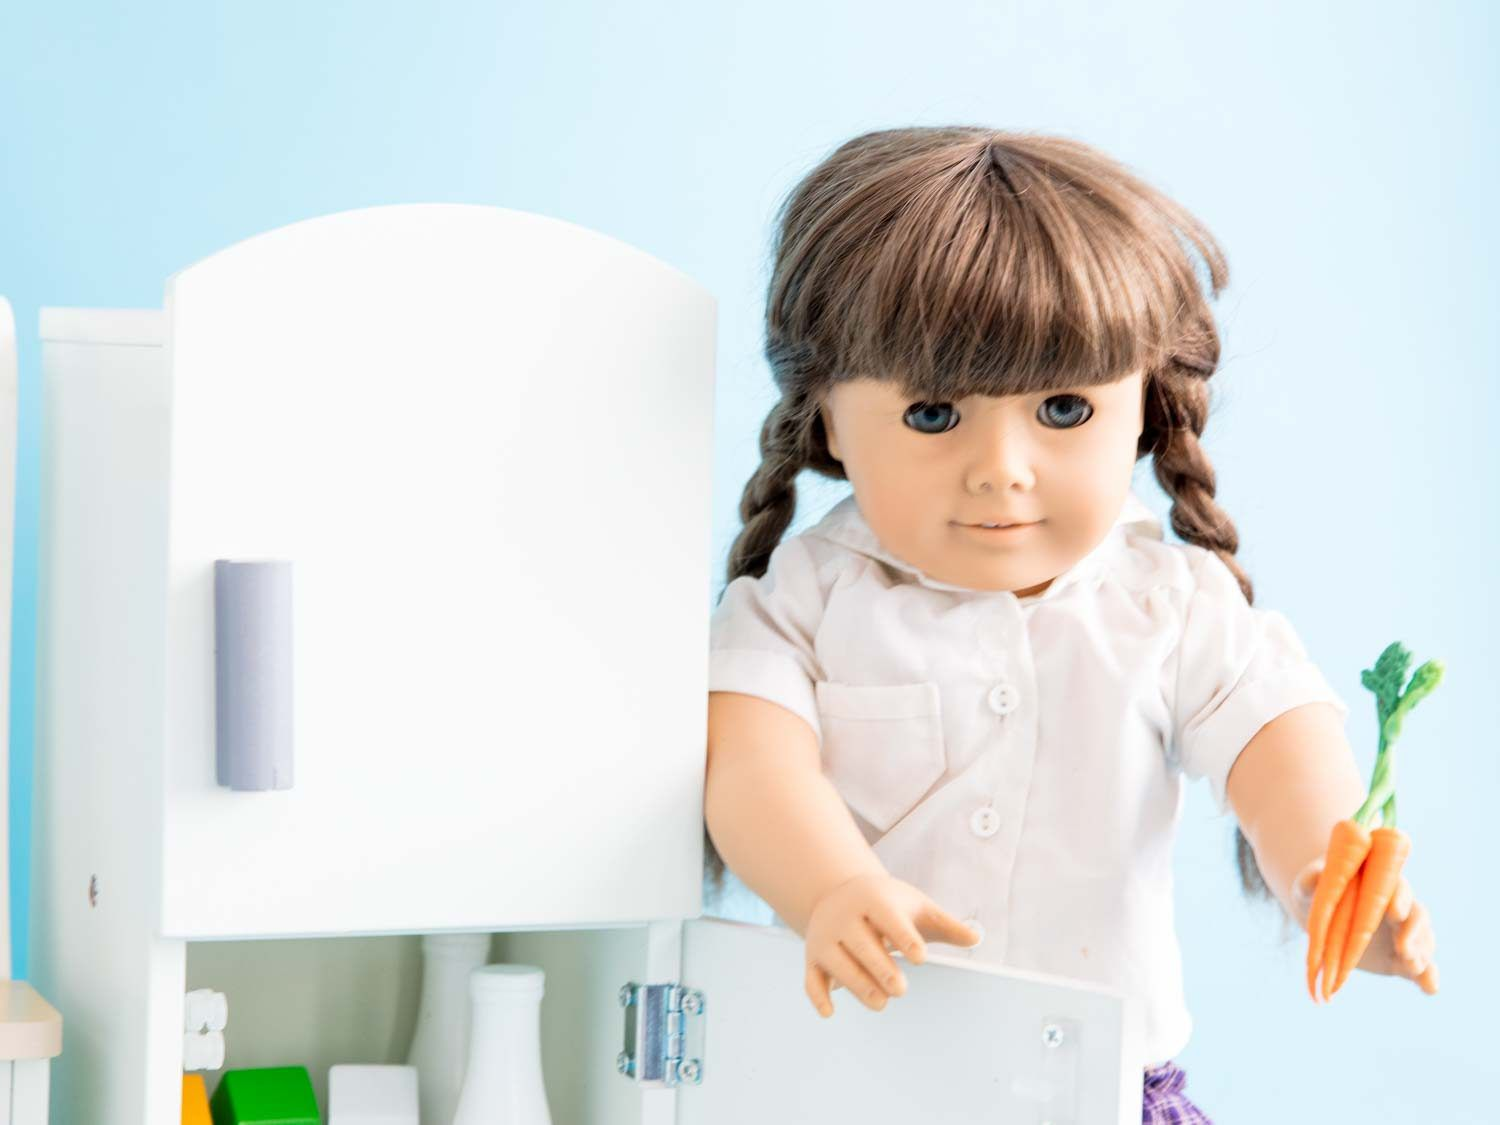 A Molly doll opening a doll-sized white refrigerator, holding a bunch of carrots